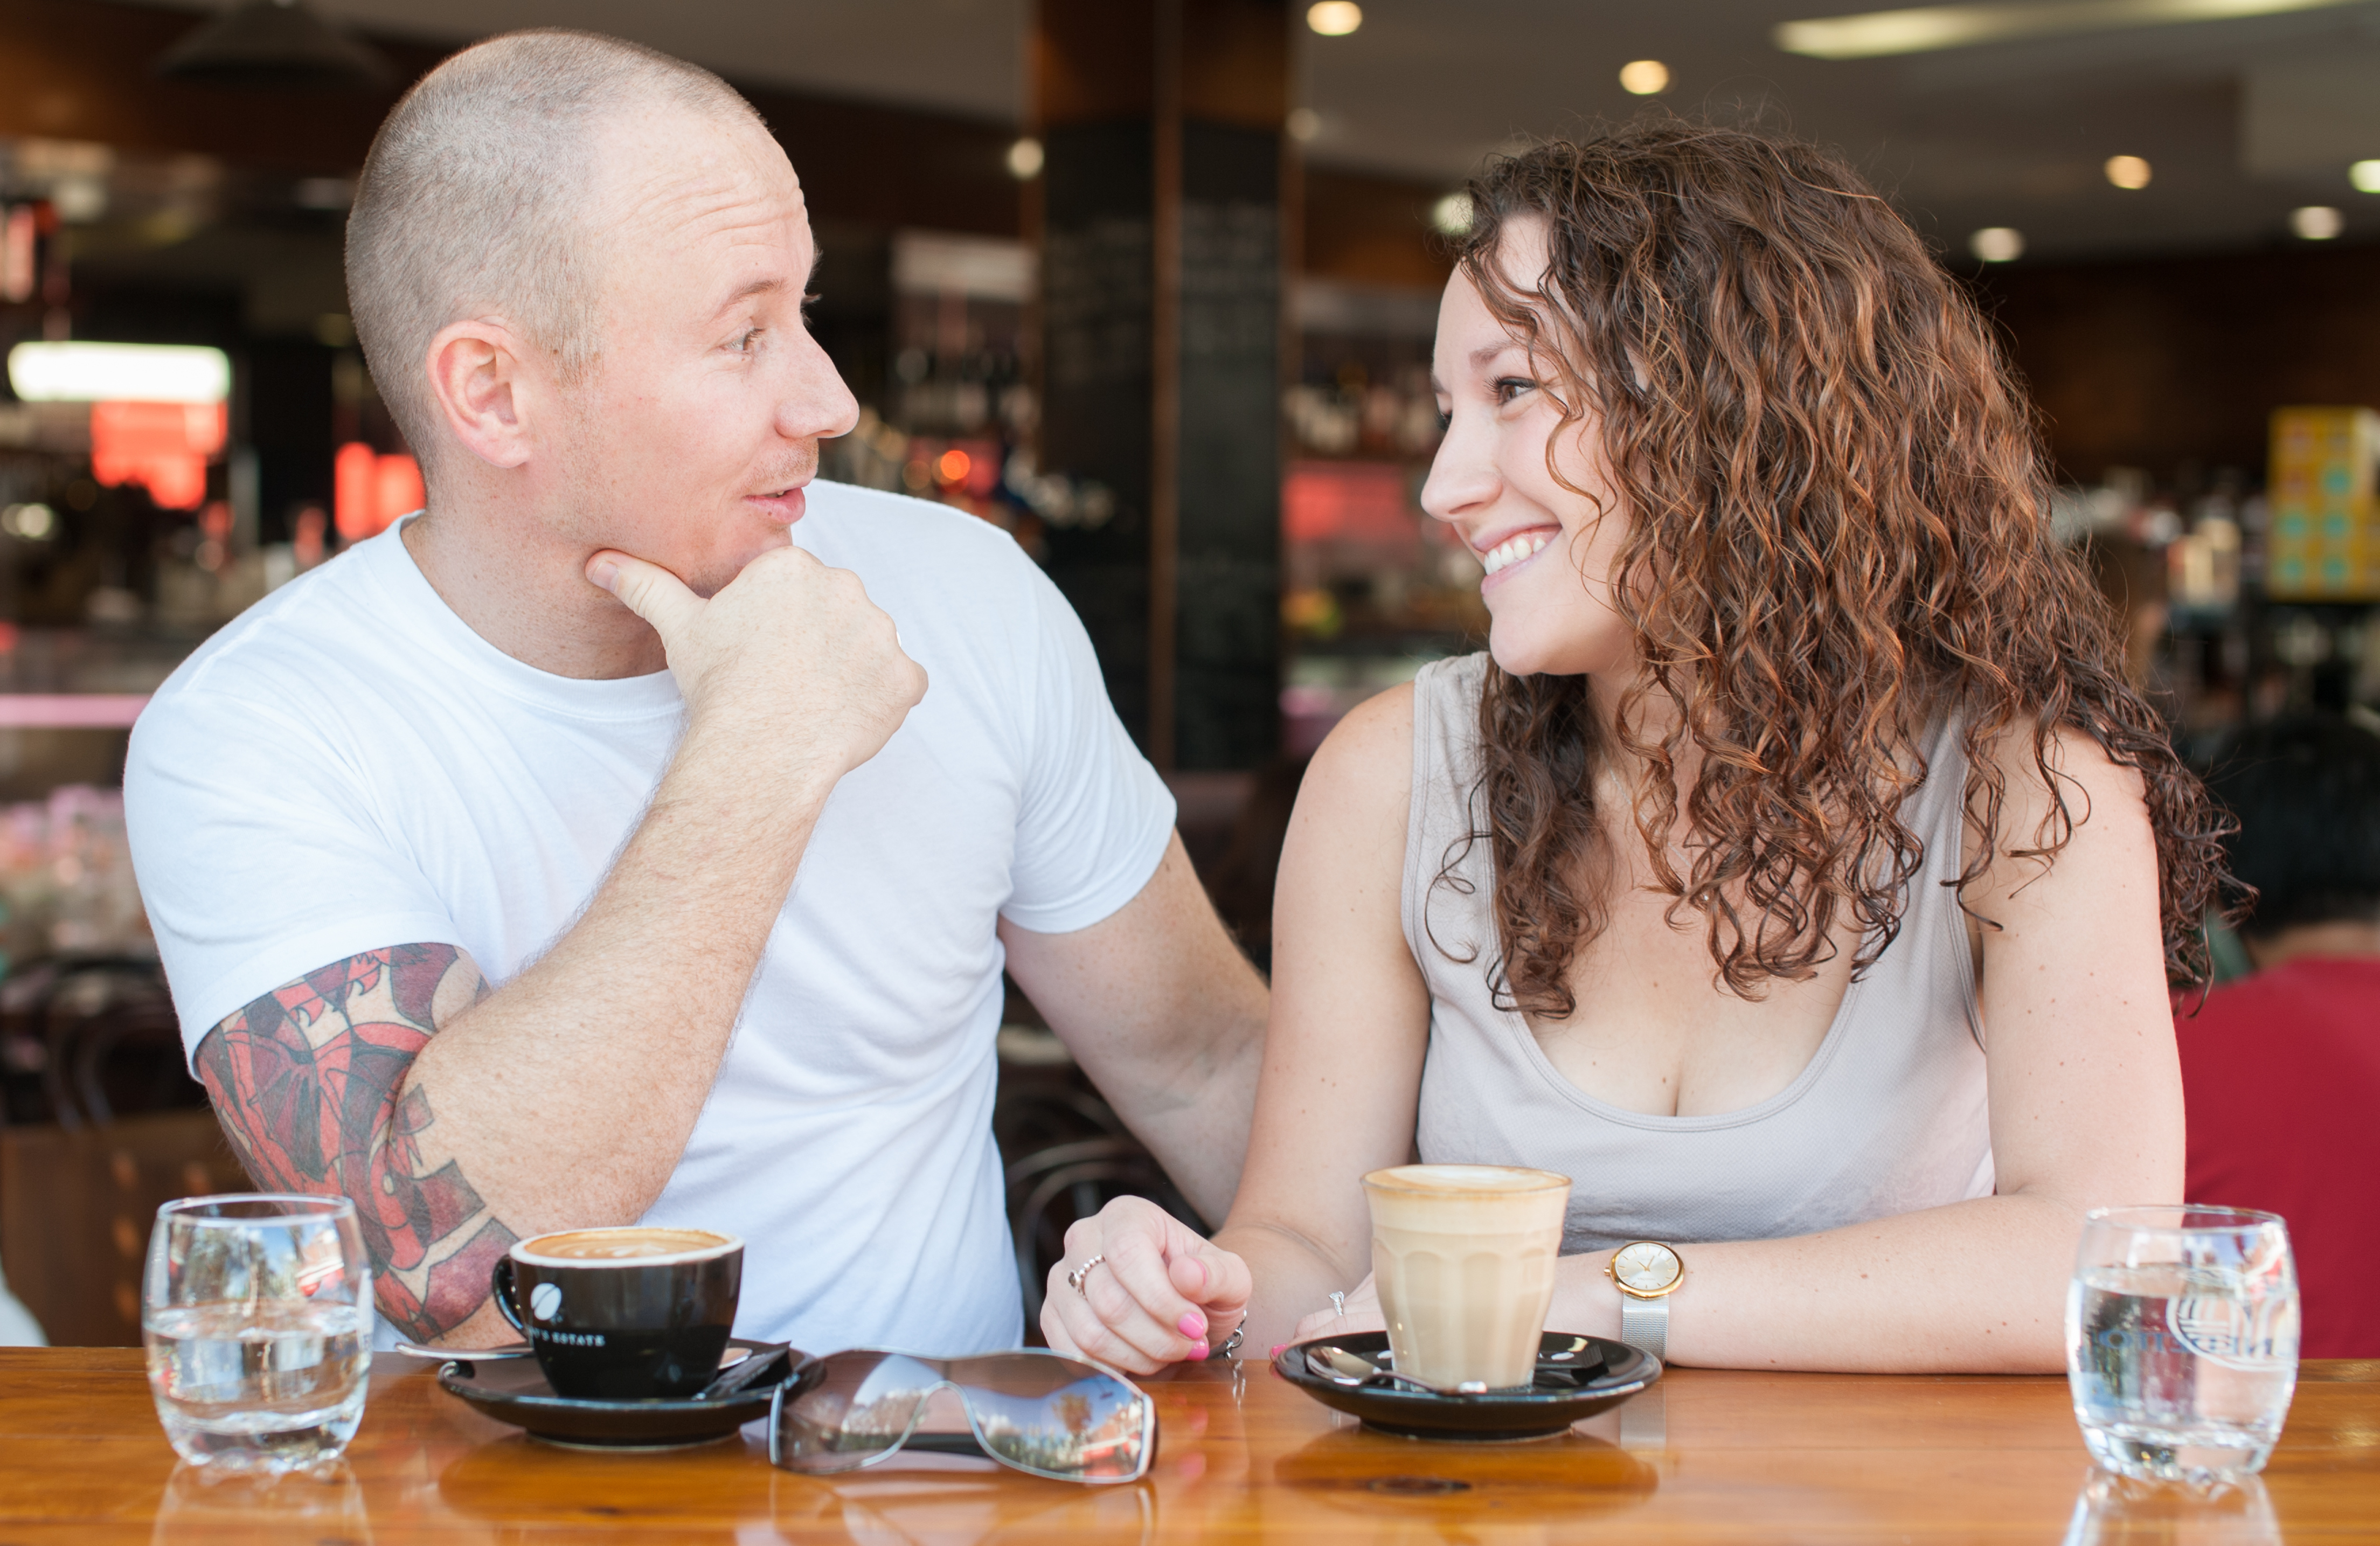 dating a man who is not yet divorced